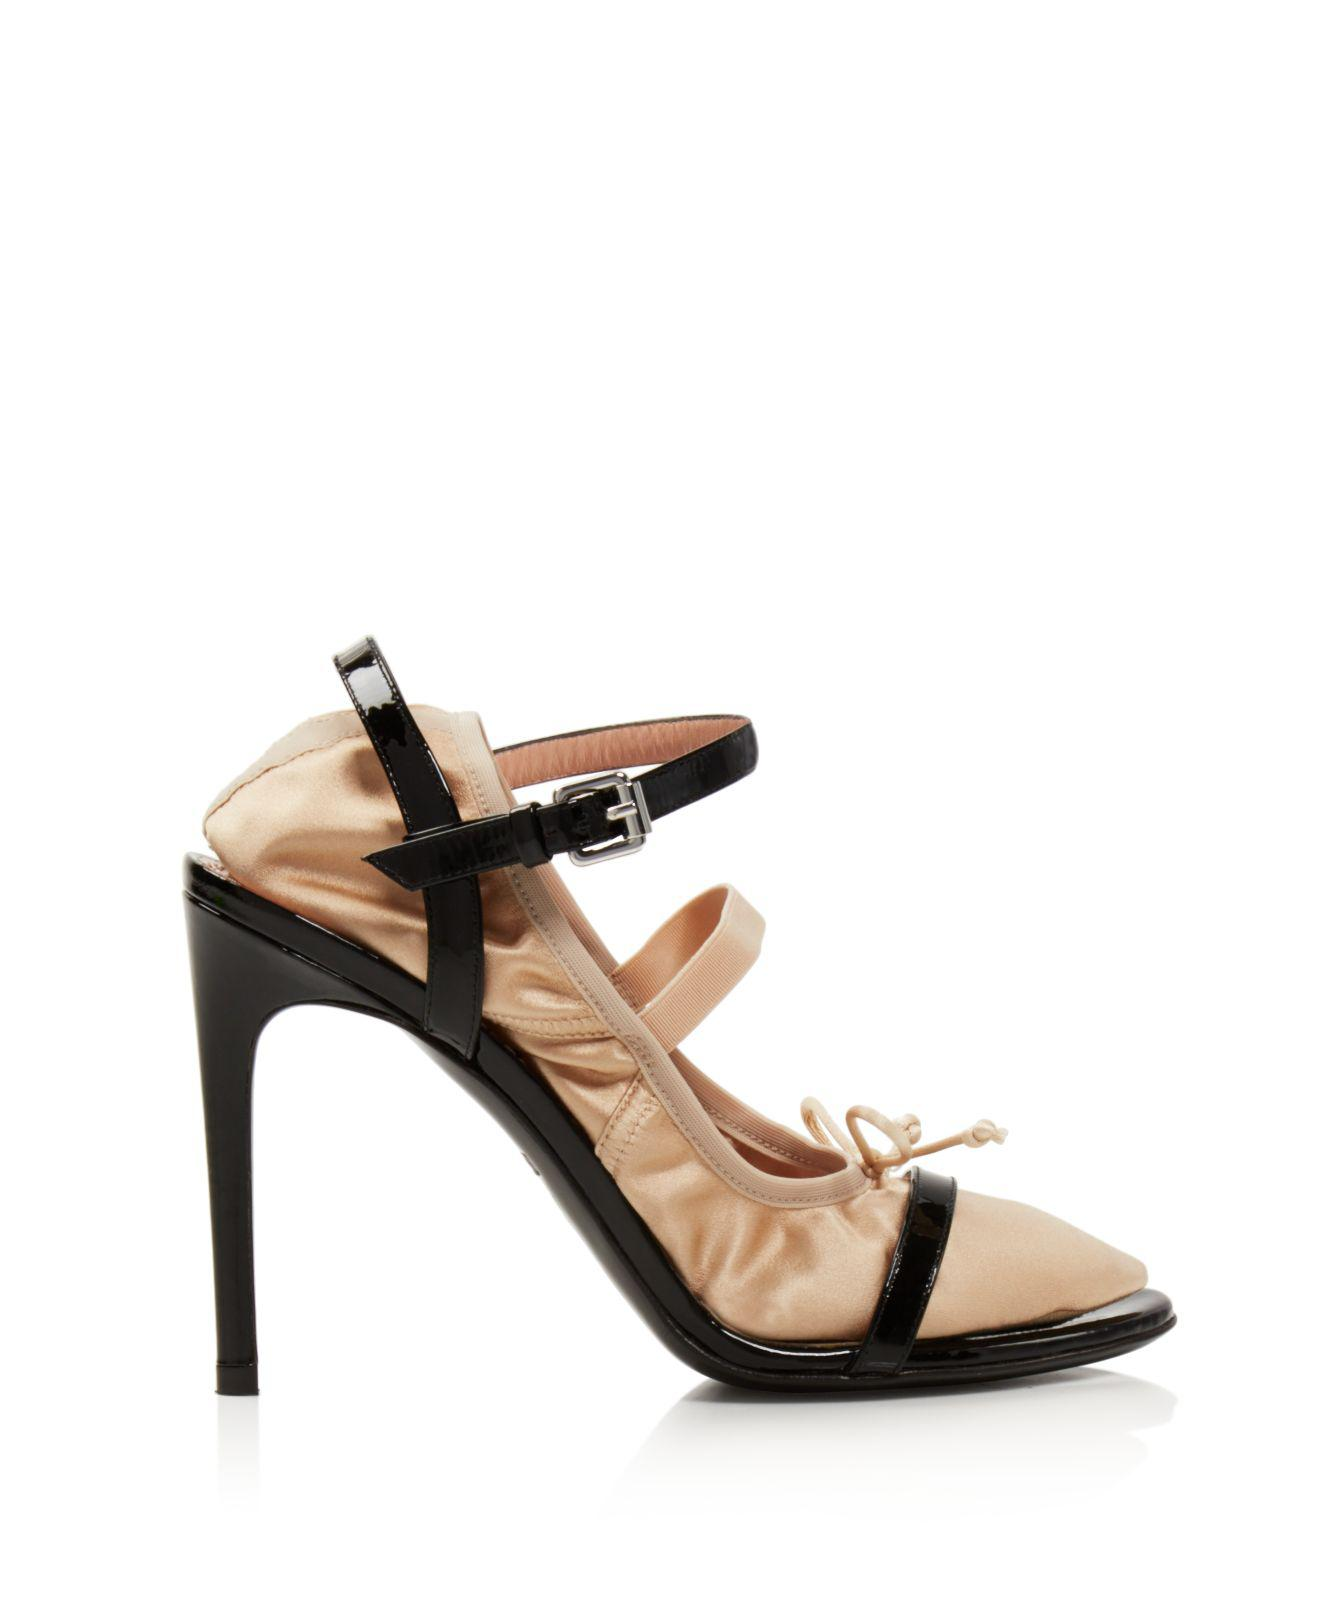 Moschino Women's 2-in-1 Patent Leather & Satin Ankle Strap Sandals KsRxlj6Ba